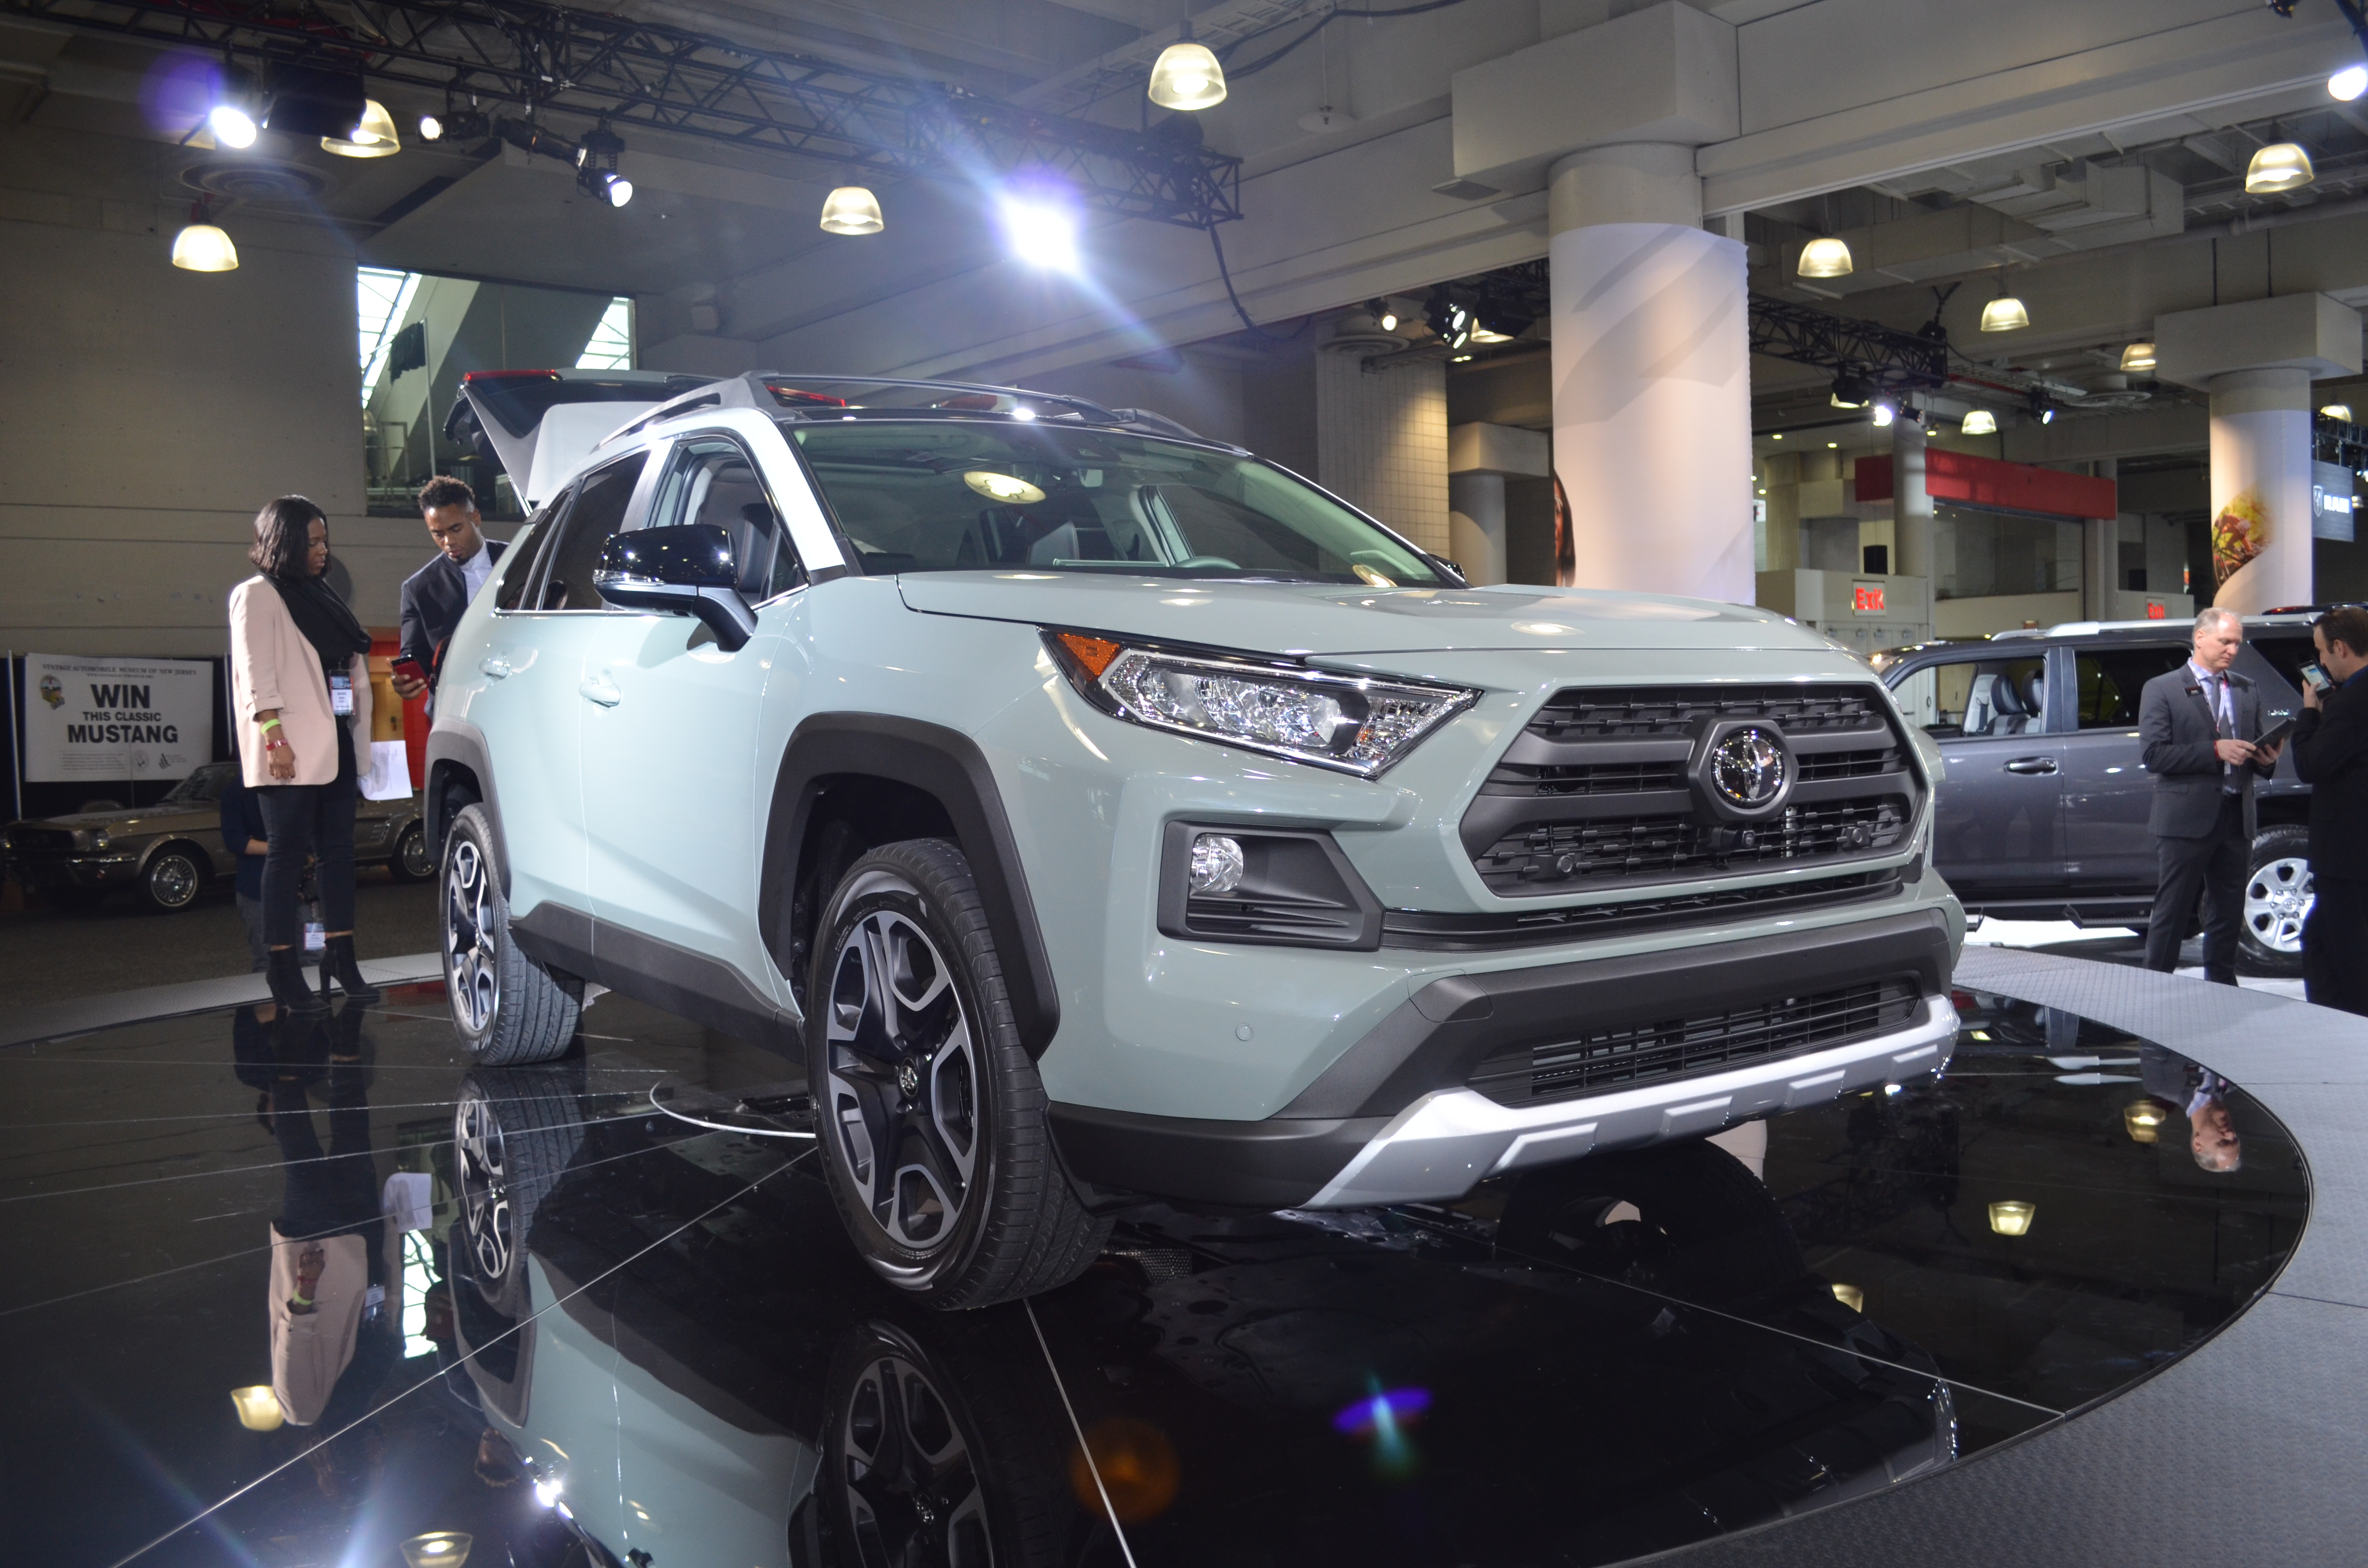 Toyota Unveils New Design, Upgrades for 2019 RAV4 at the New